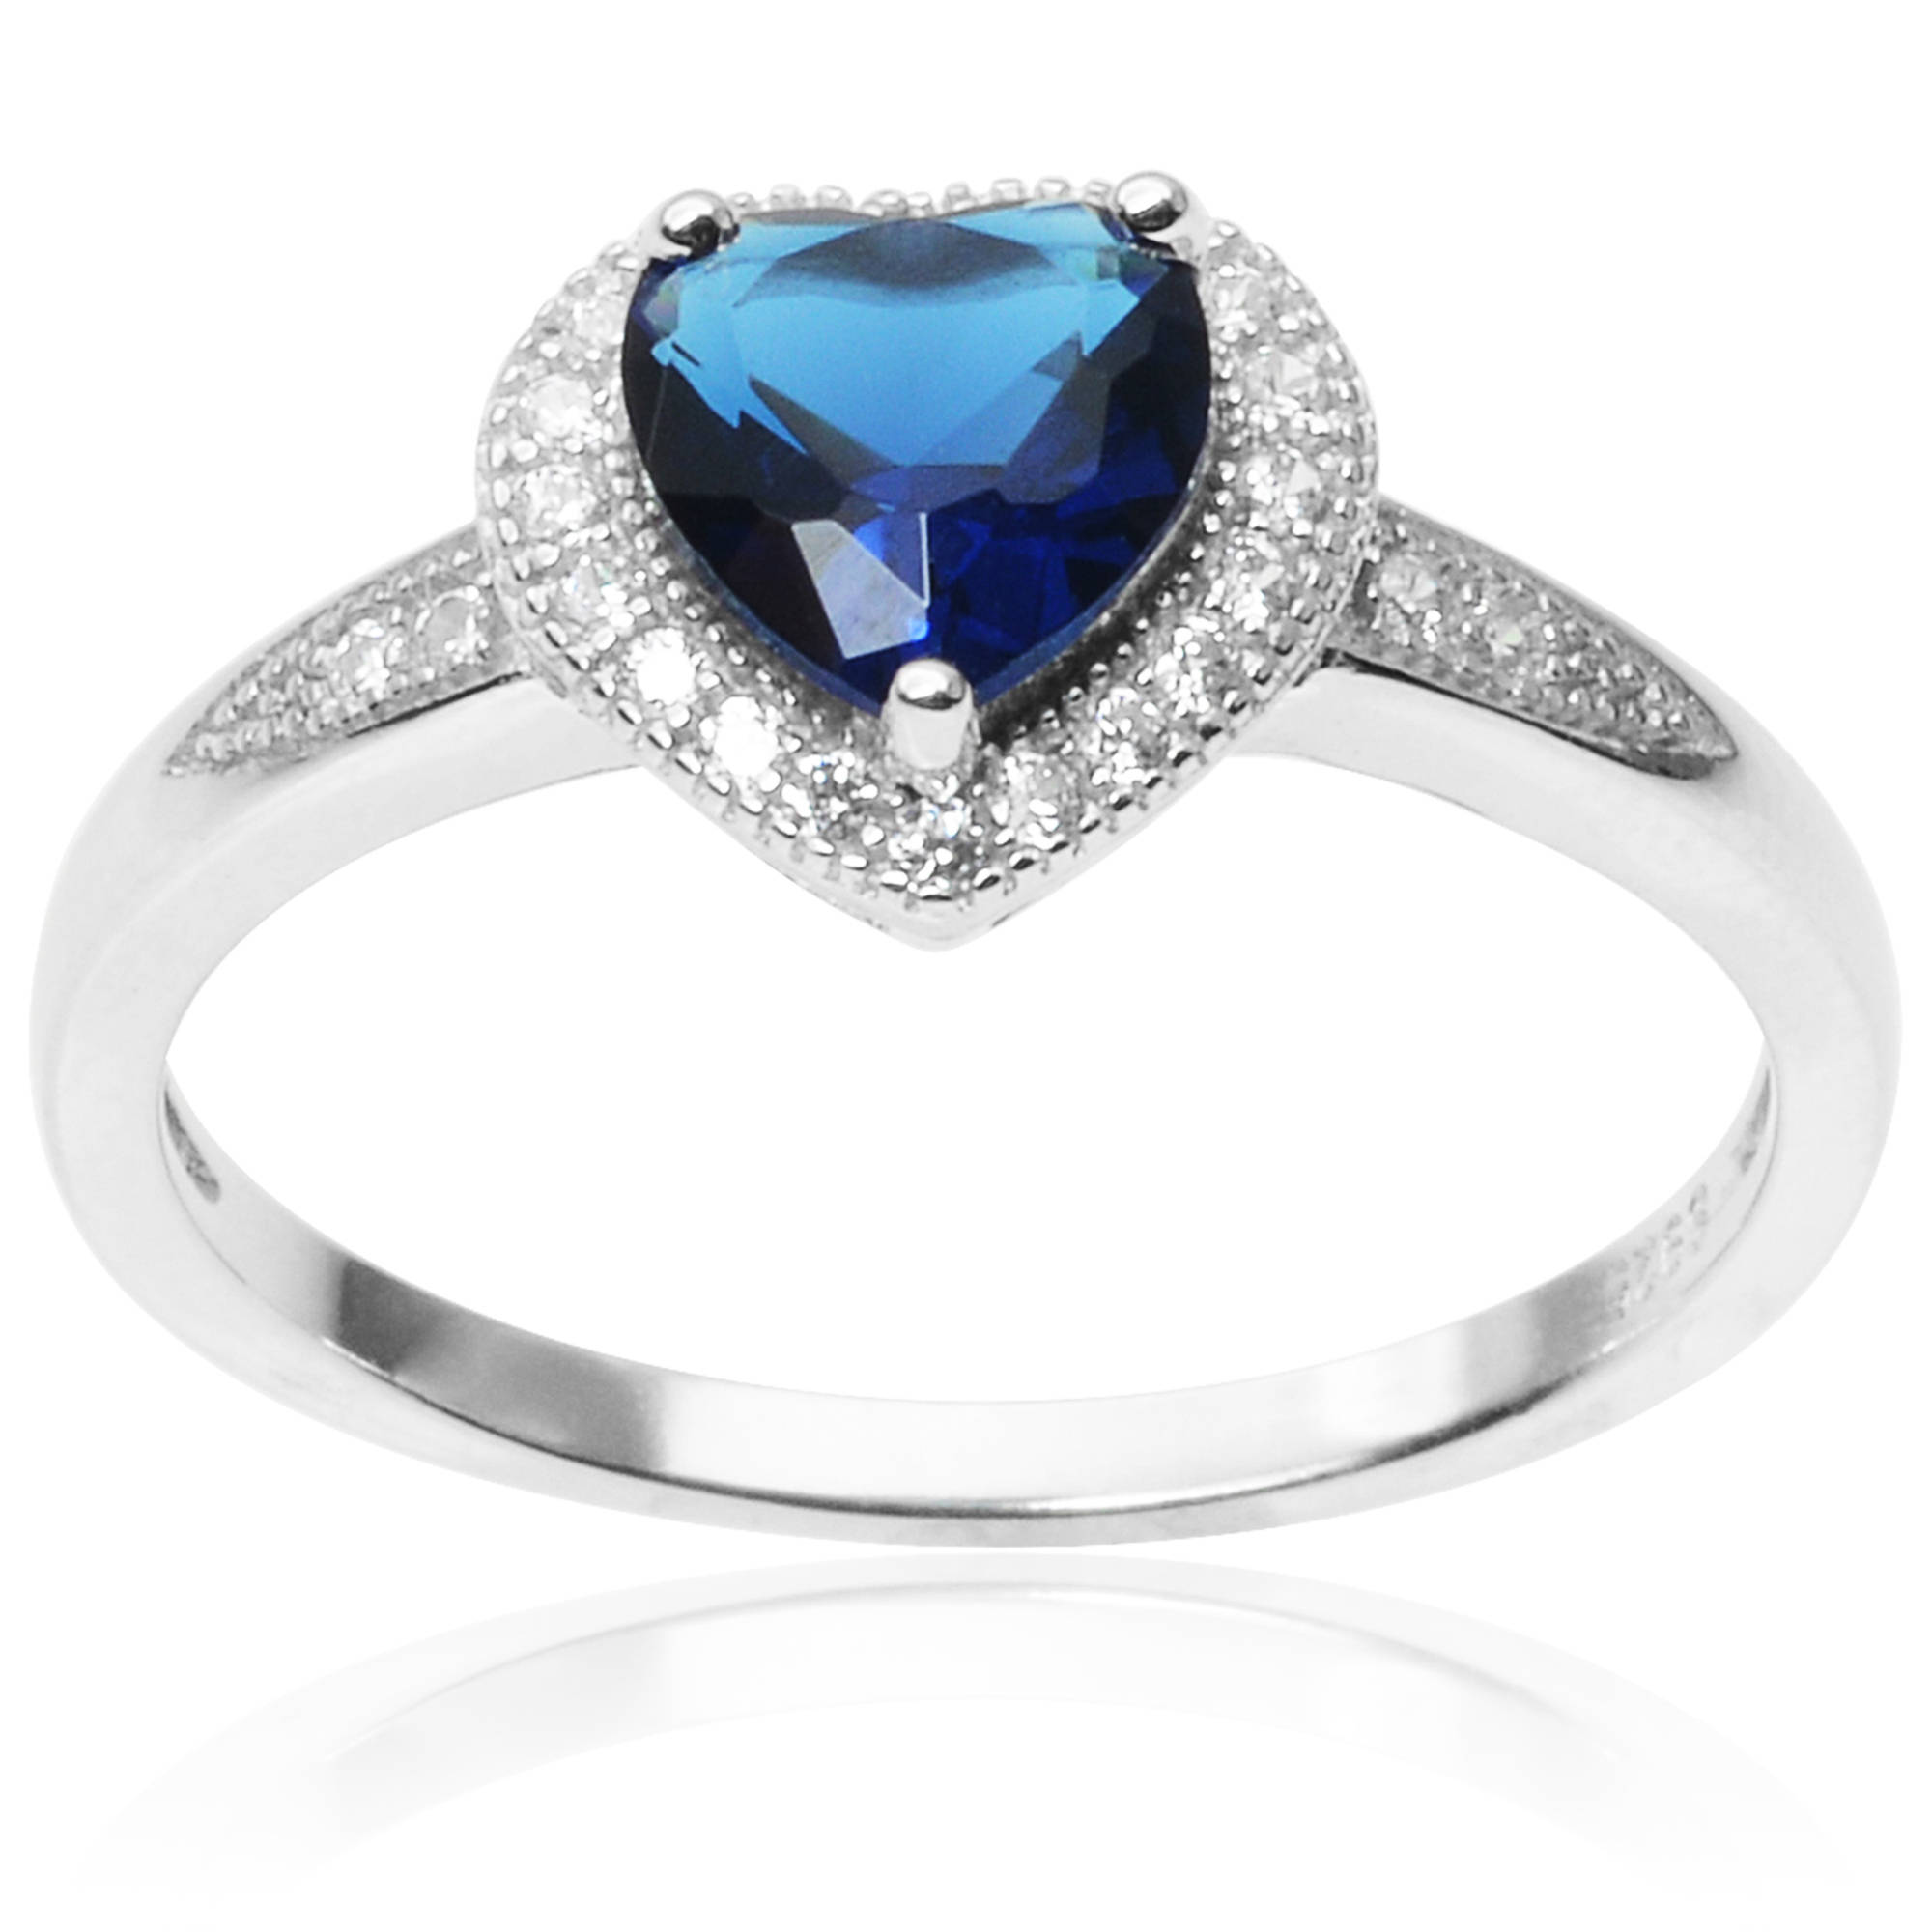 Alexandria Collection Sterling Silver 1 Carat T.G.W. Round Cubic Zirconia Heart Ring